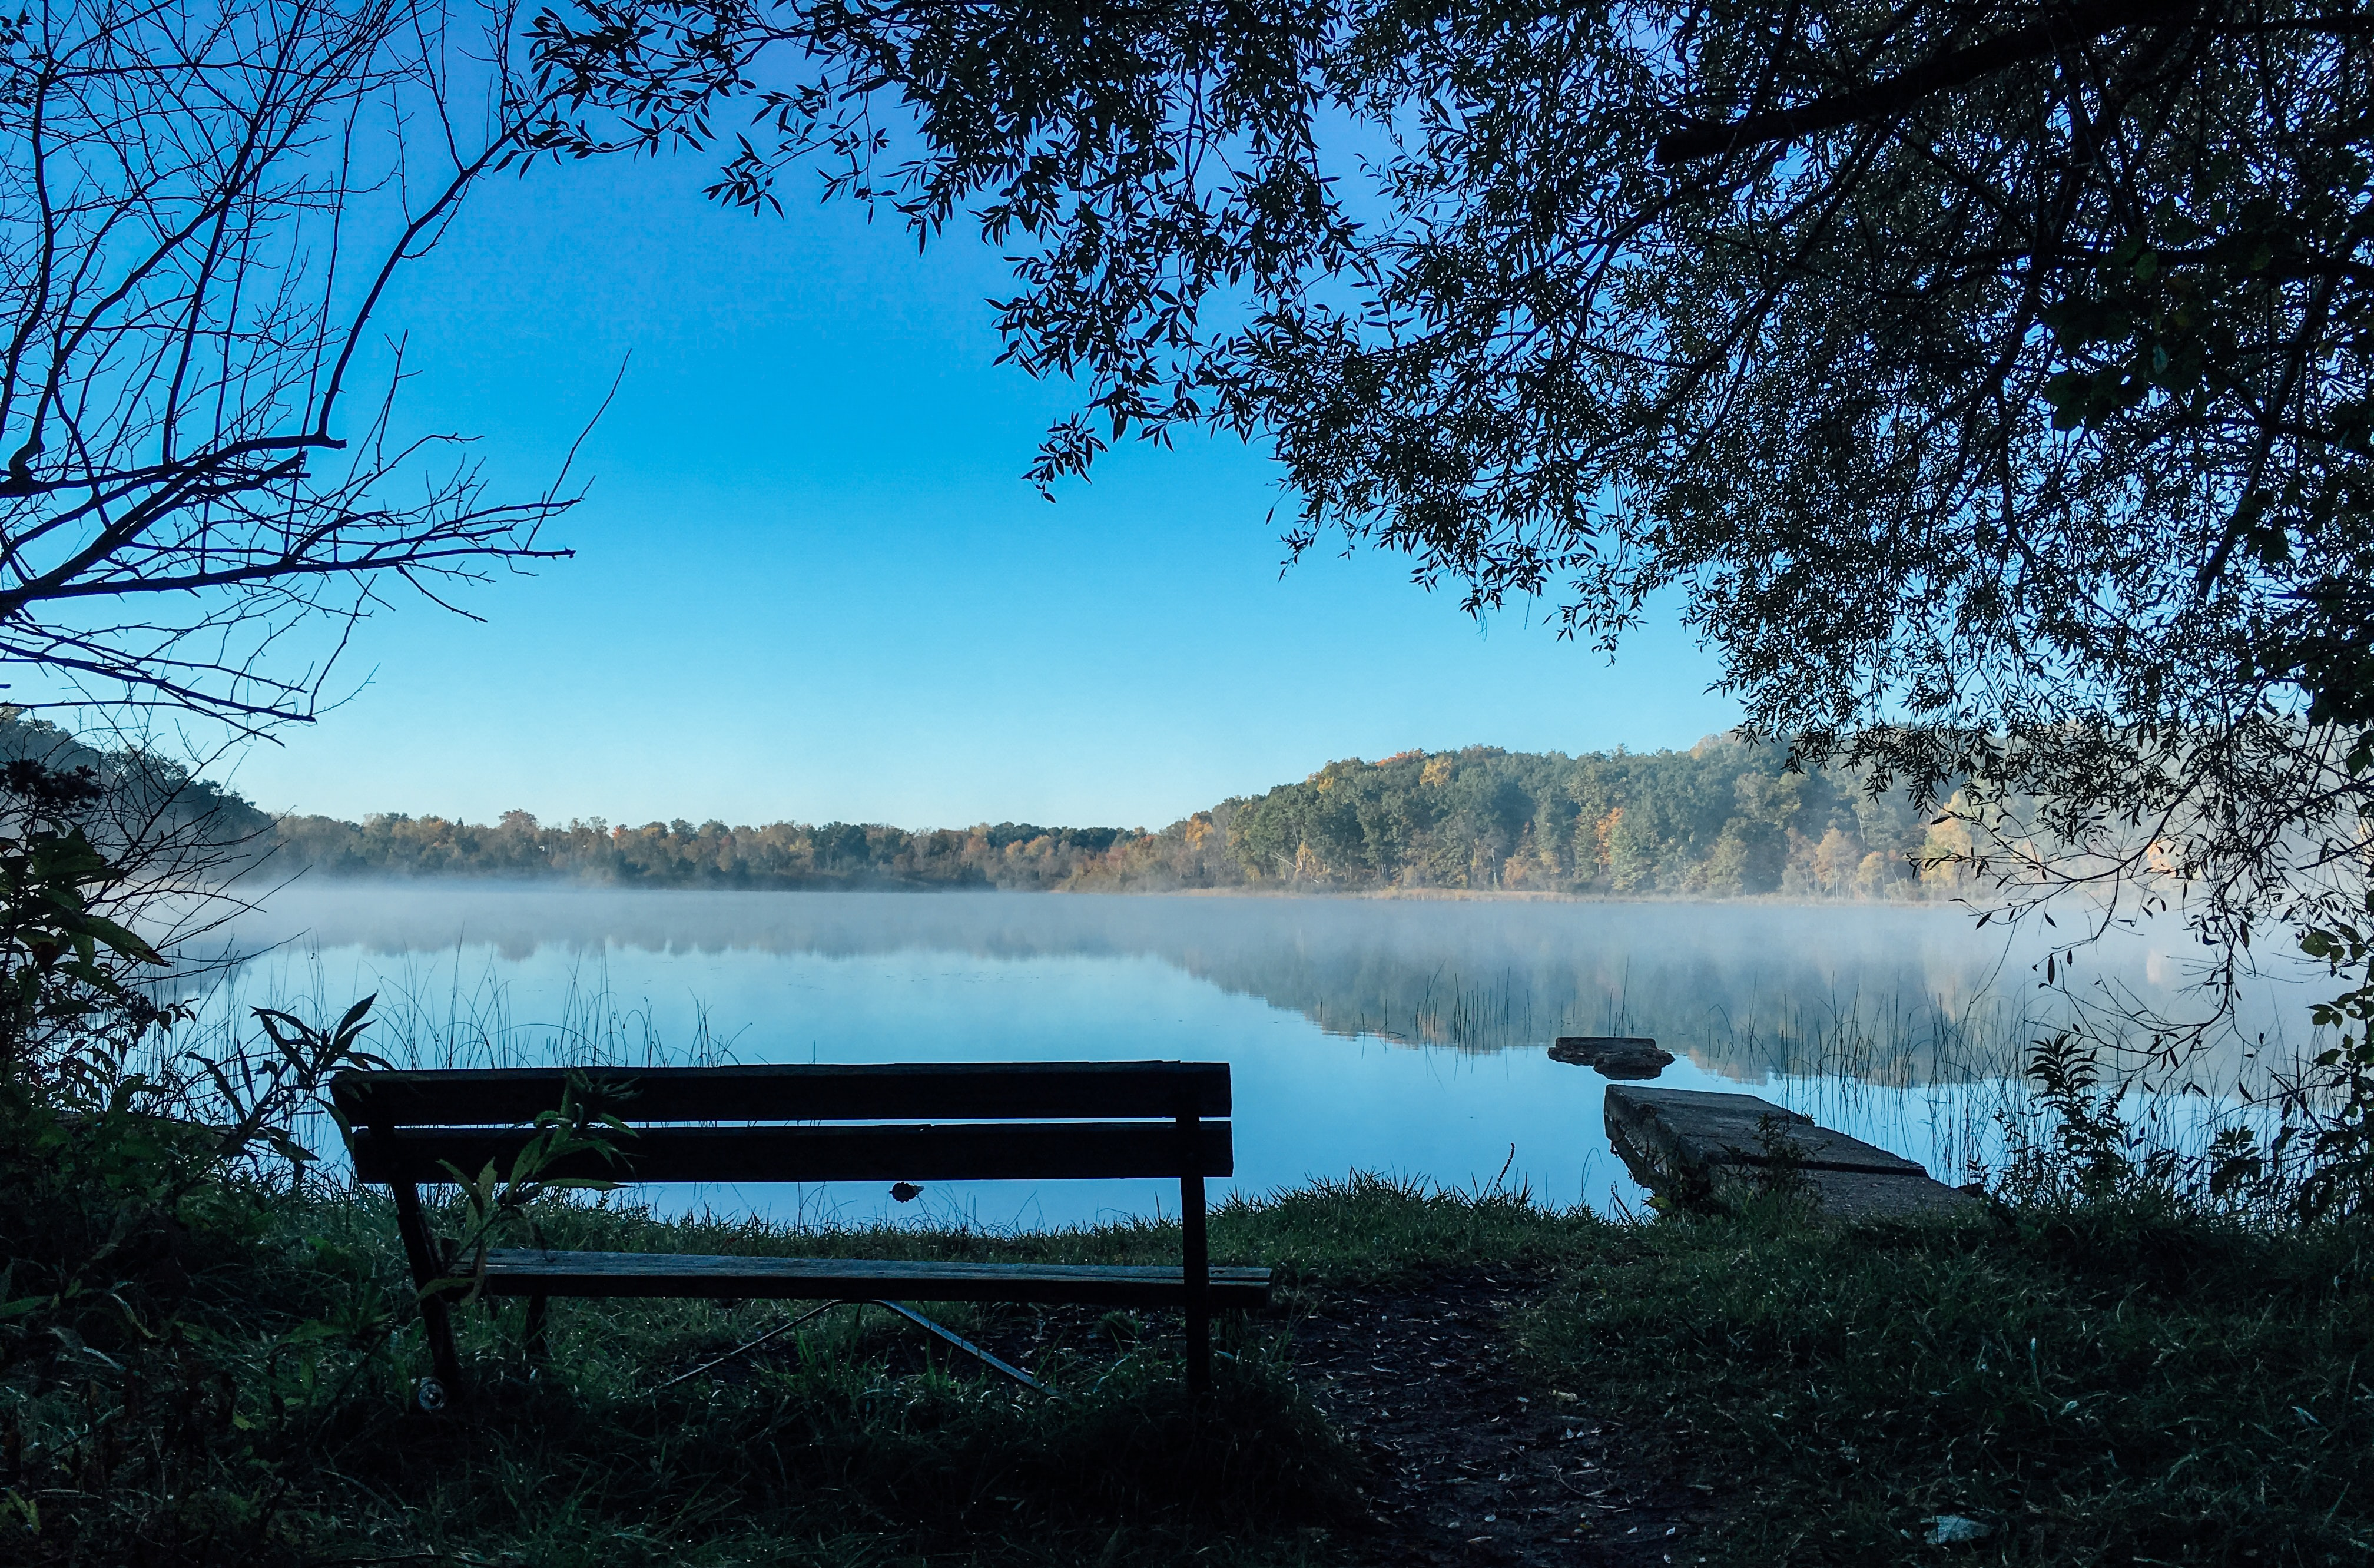 bench in front of body of water